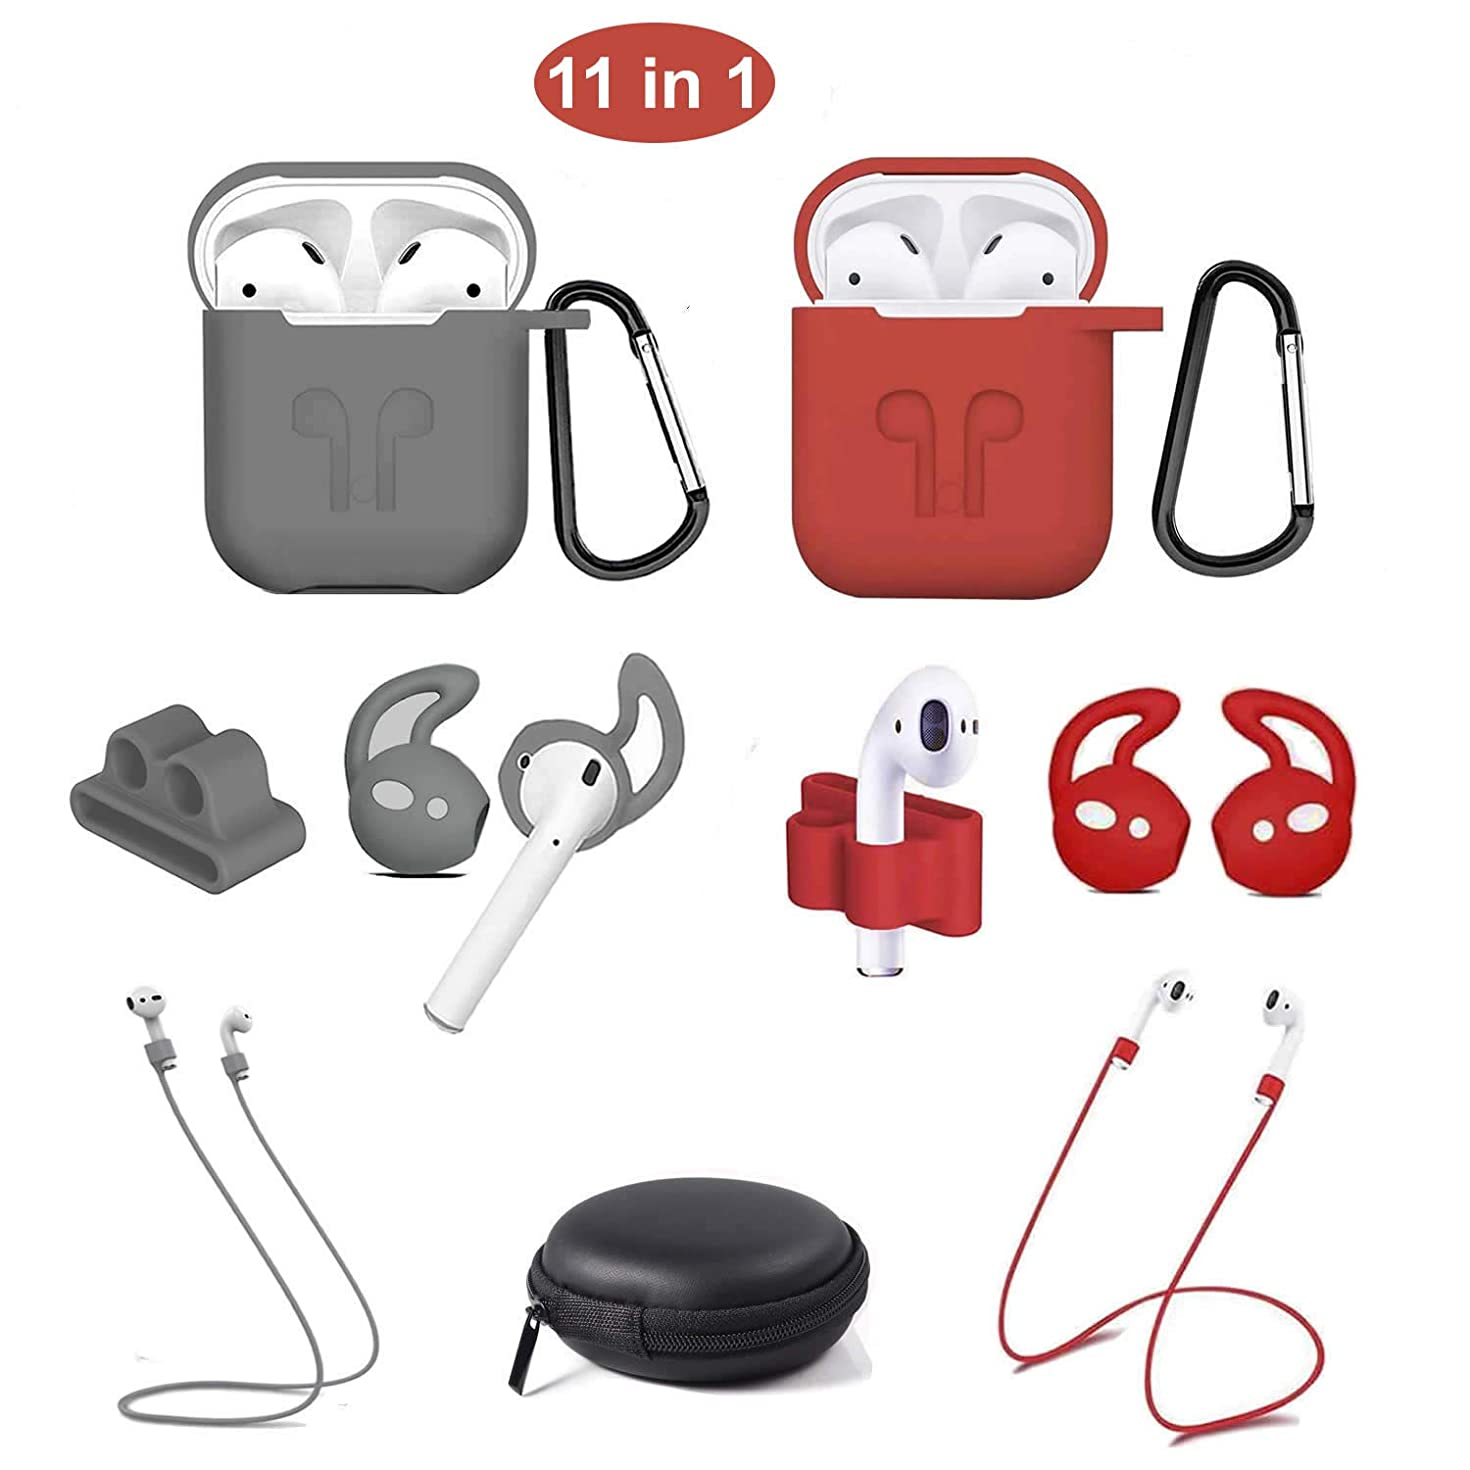 AirPods Case,11 in 1 Airpod Accessories Kits Protective Silicone Cover and Skin for Apple Airpods 2 & 1 Charging Case with Airpods Ear Hook Grips/Airpods Strap/Keychain/Watch Band Holder (Gray/Red)